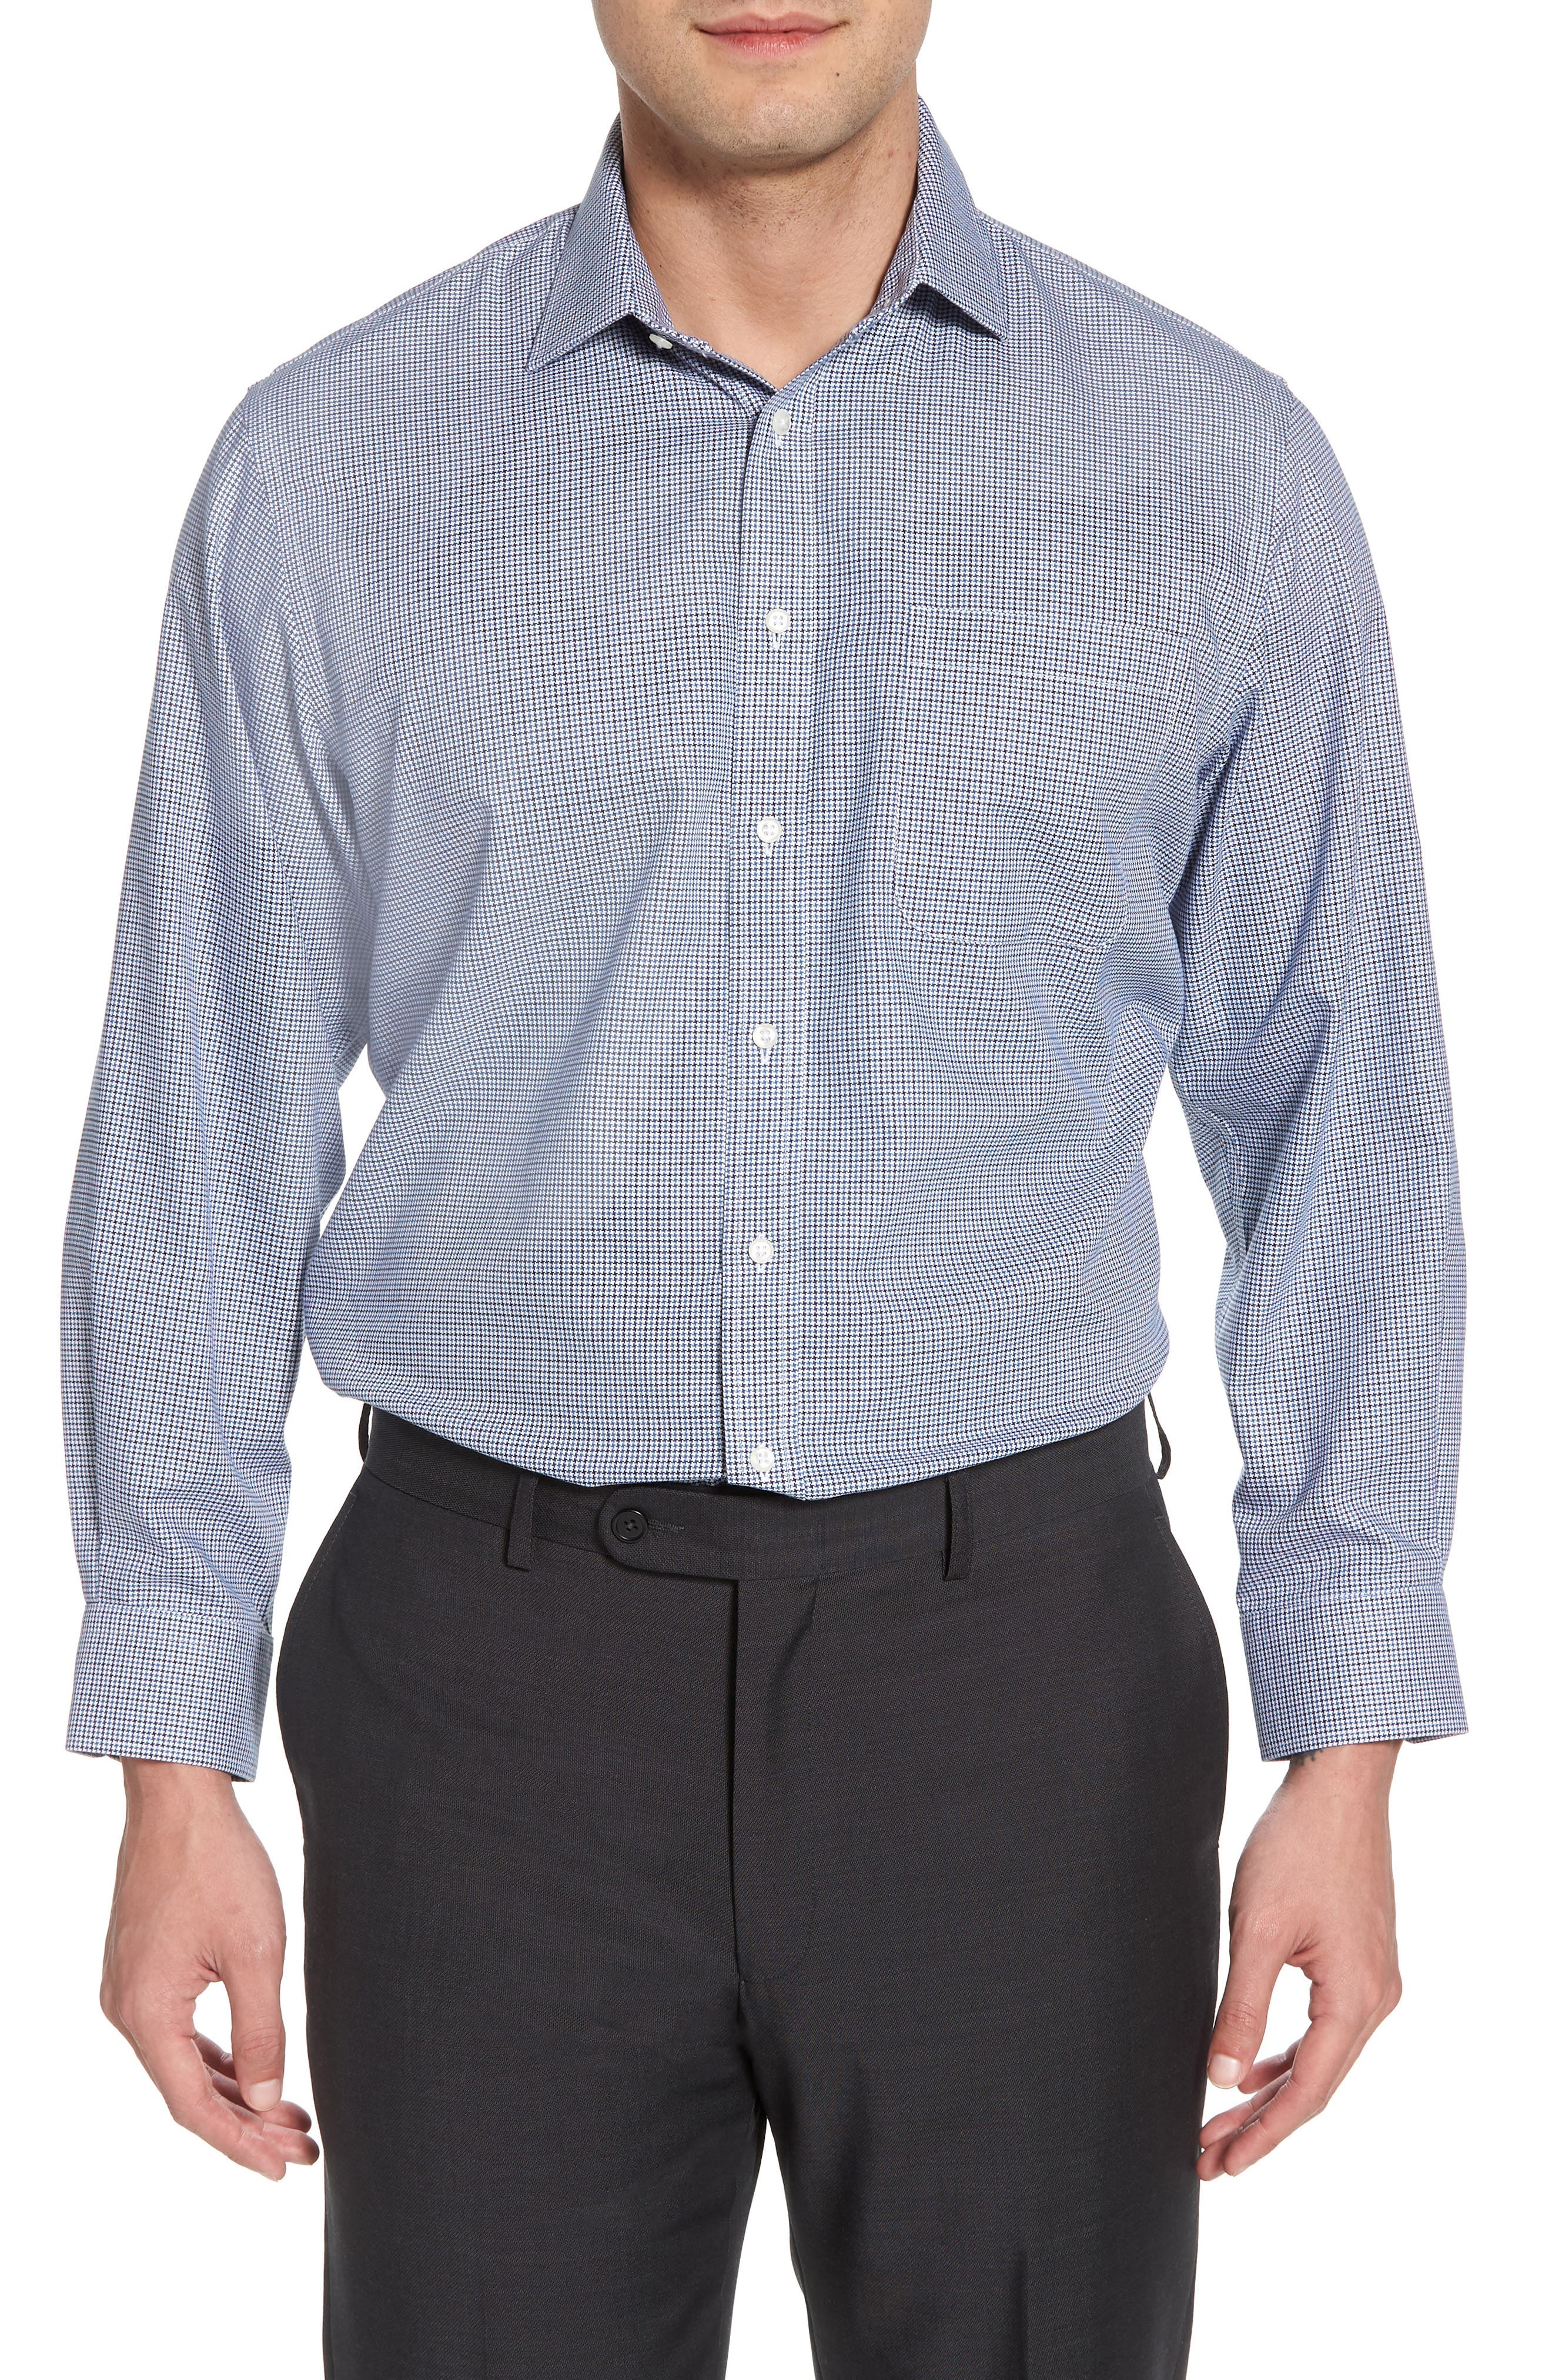 Smartcare<sup>™</sup> Traditional Fit Houndstooth Dress Shirt,                             Main thumbnail 1, color,                             Navy Medieval